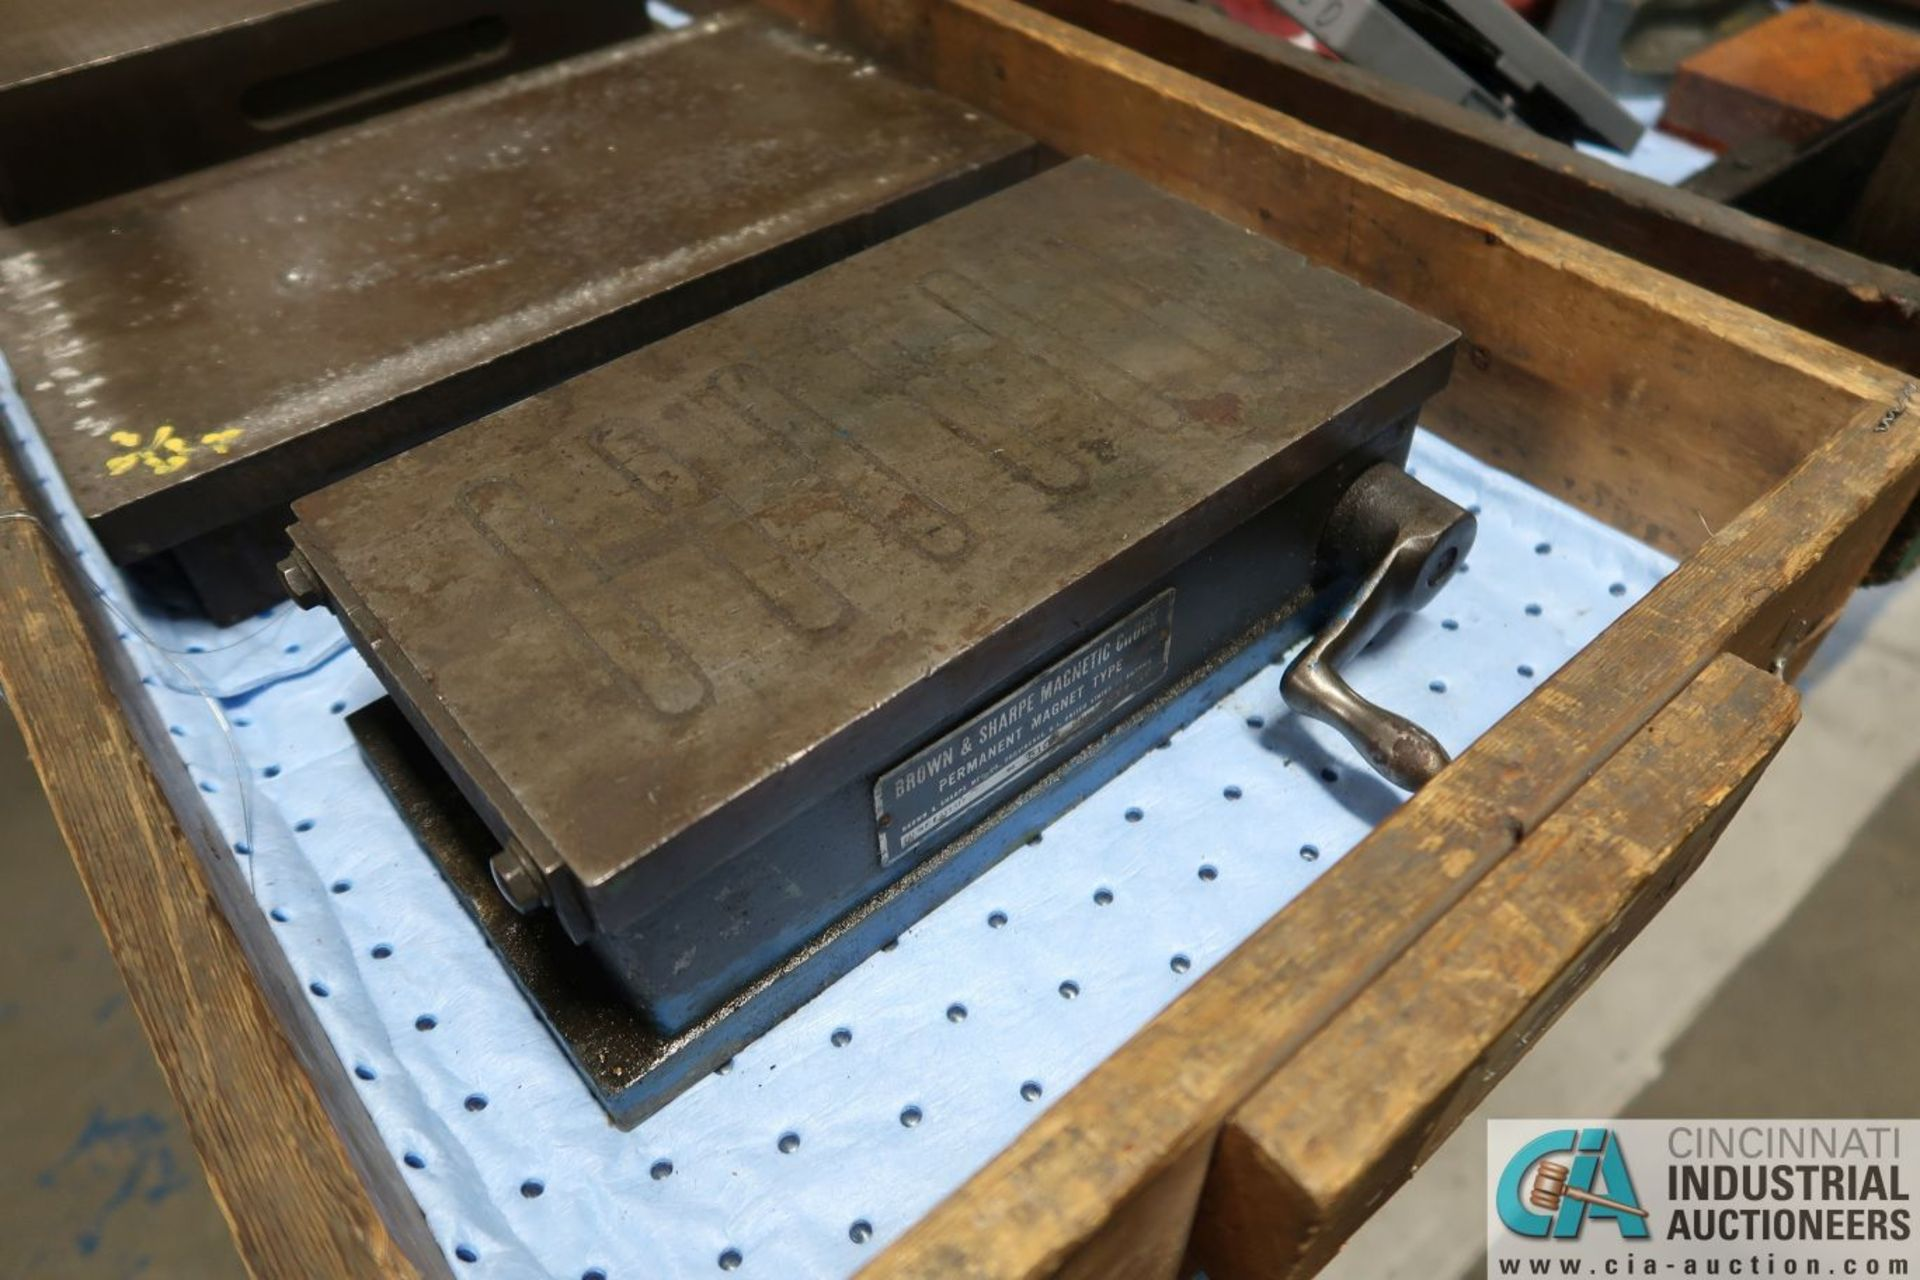 """6-1/2"""" X 11"""" X 3"""", 7-1/2"""" X 13"""" X 2-1/2"""" CAST IRON SURFACE PLATES WITH 5-1/2"""" X 10-1/2"""" MAGNETIC - Image 2 of 3"""